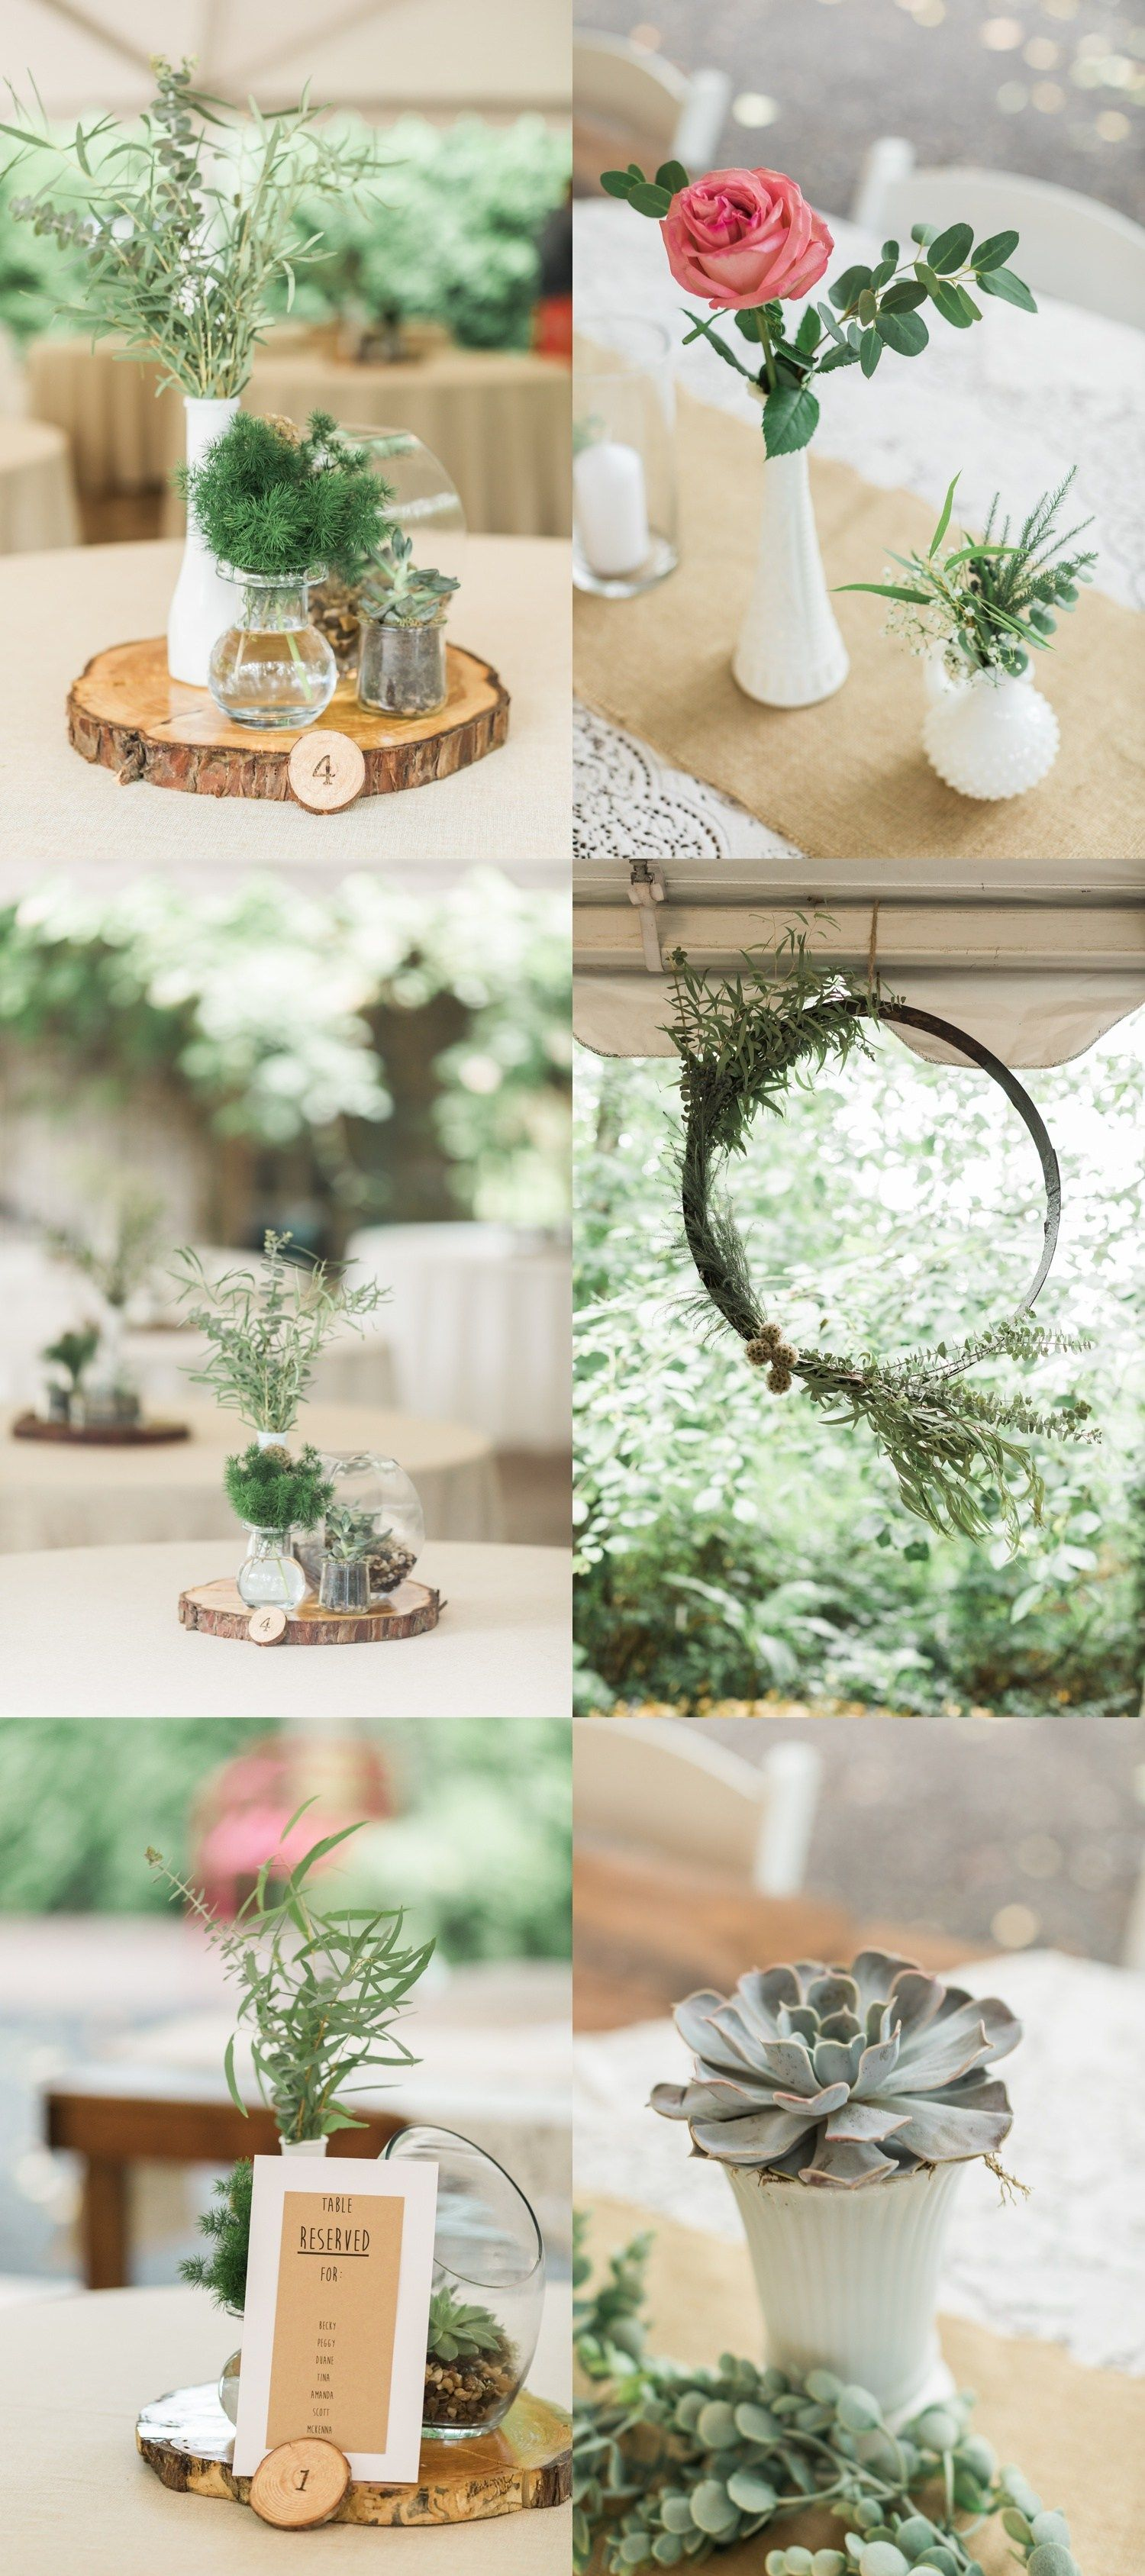 Beautiful rustic decor and centerpieces for a summer